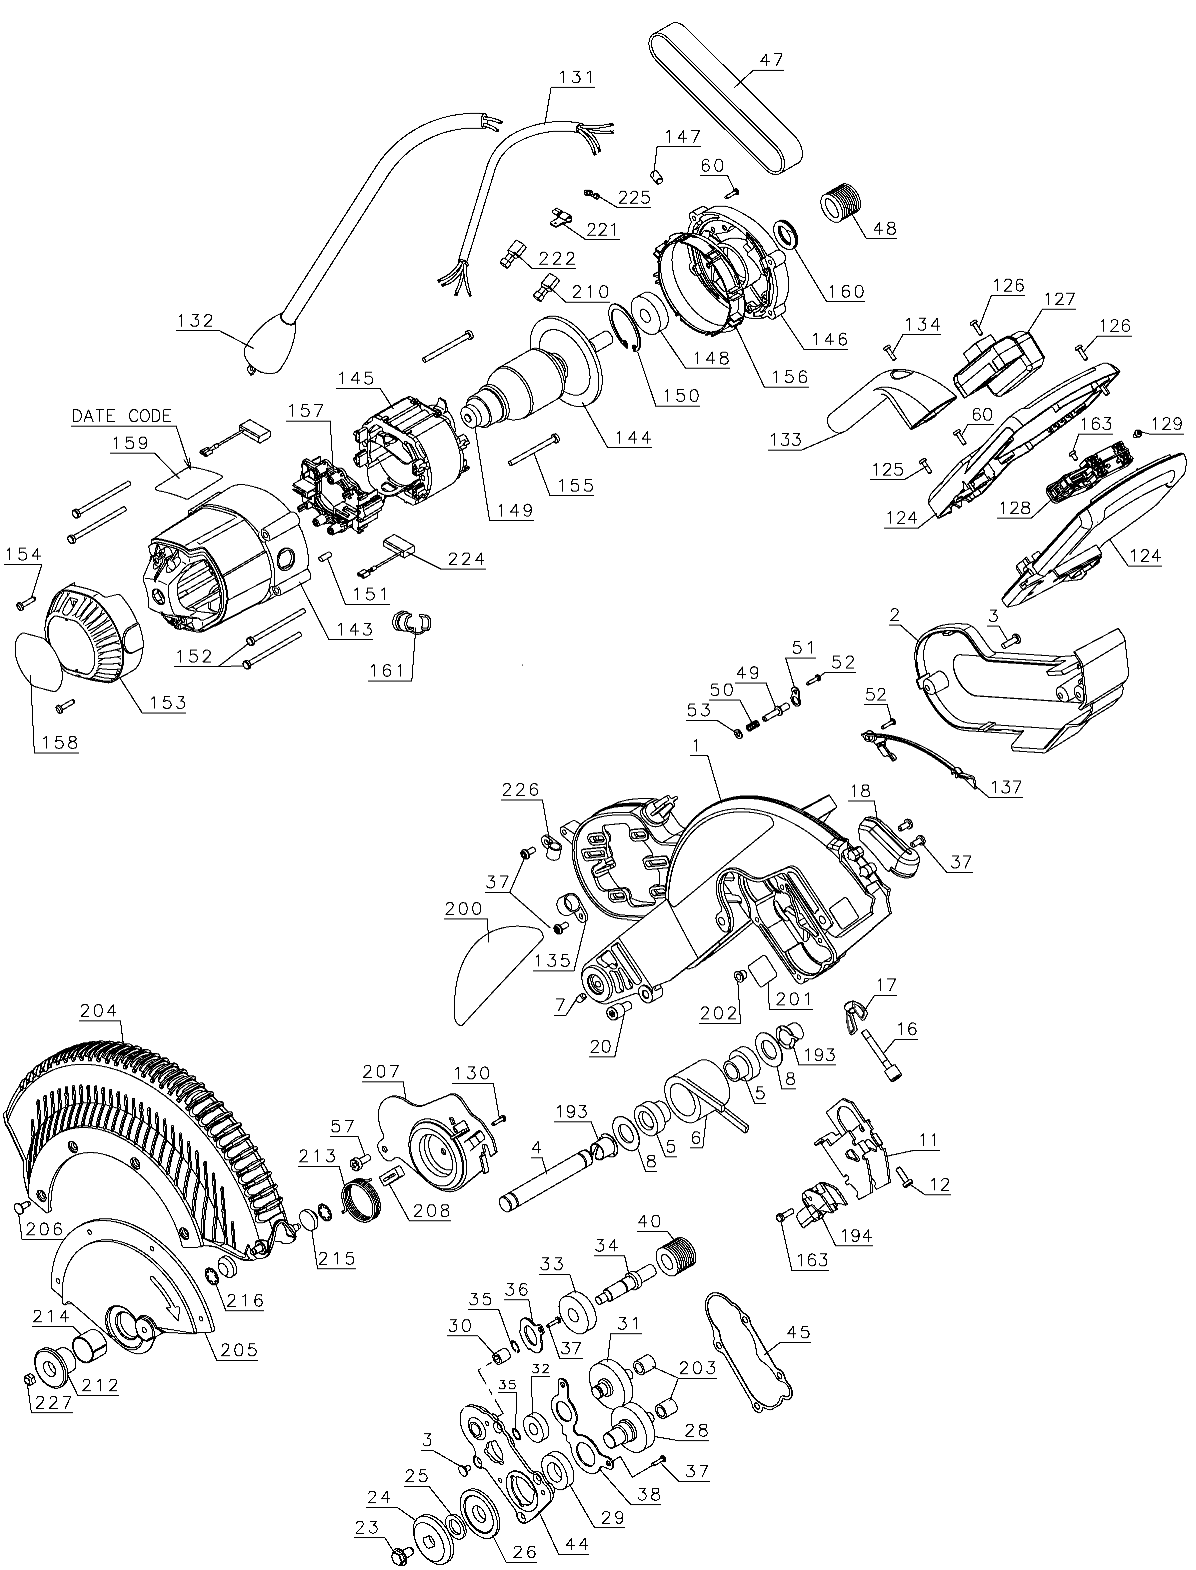 DWS780 a - Miter Saw Parts schematic